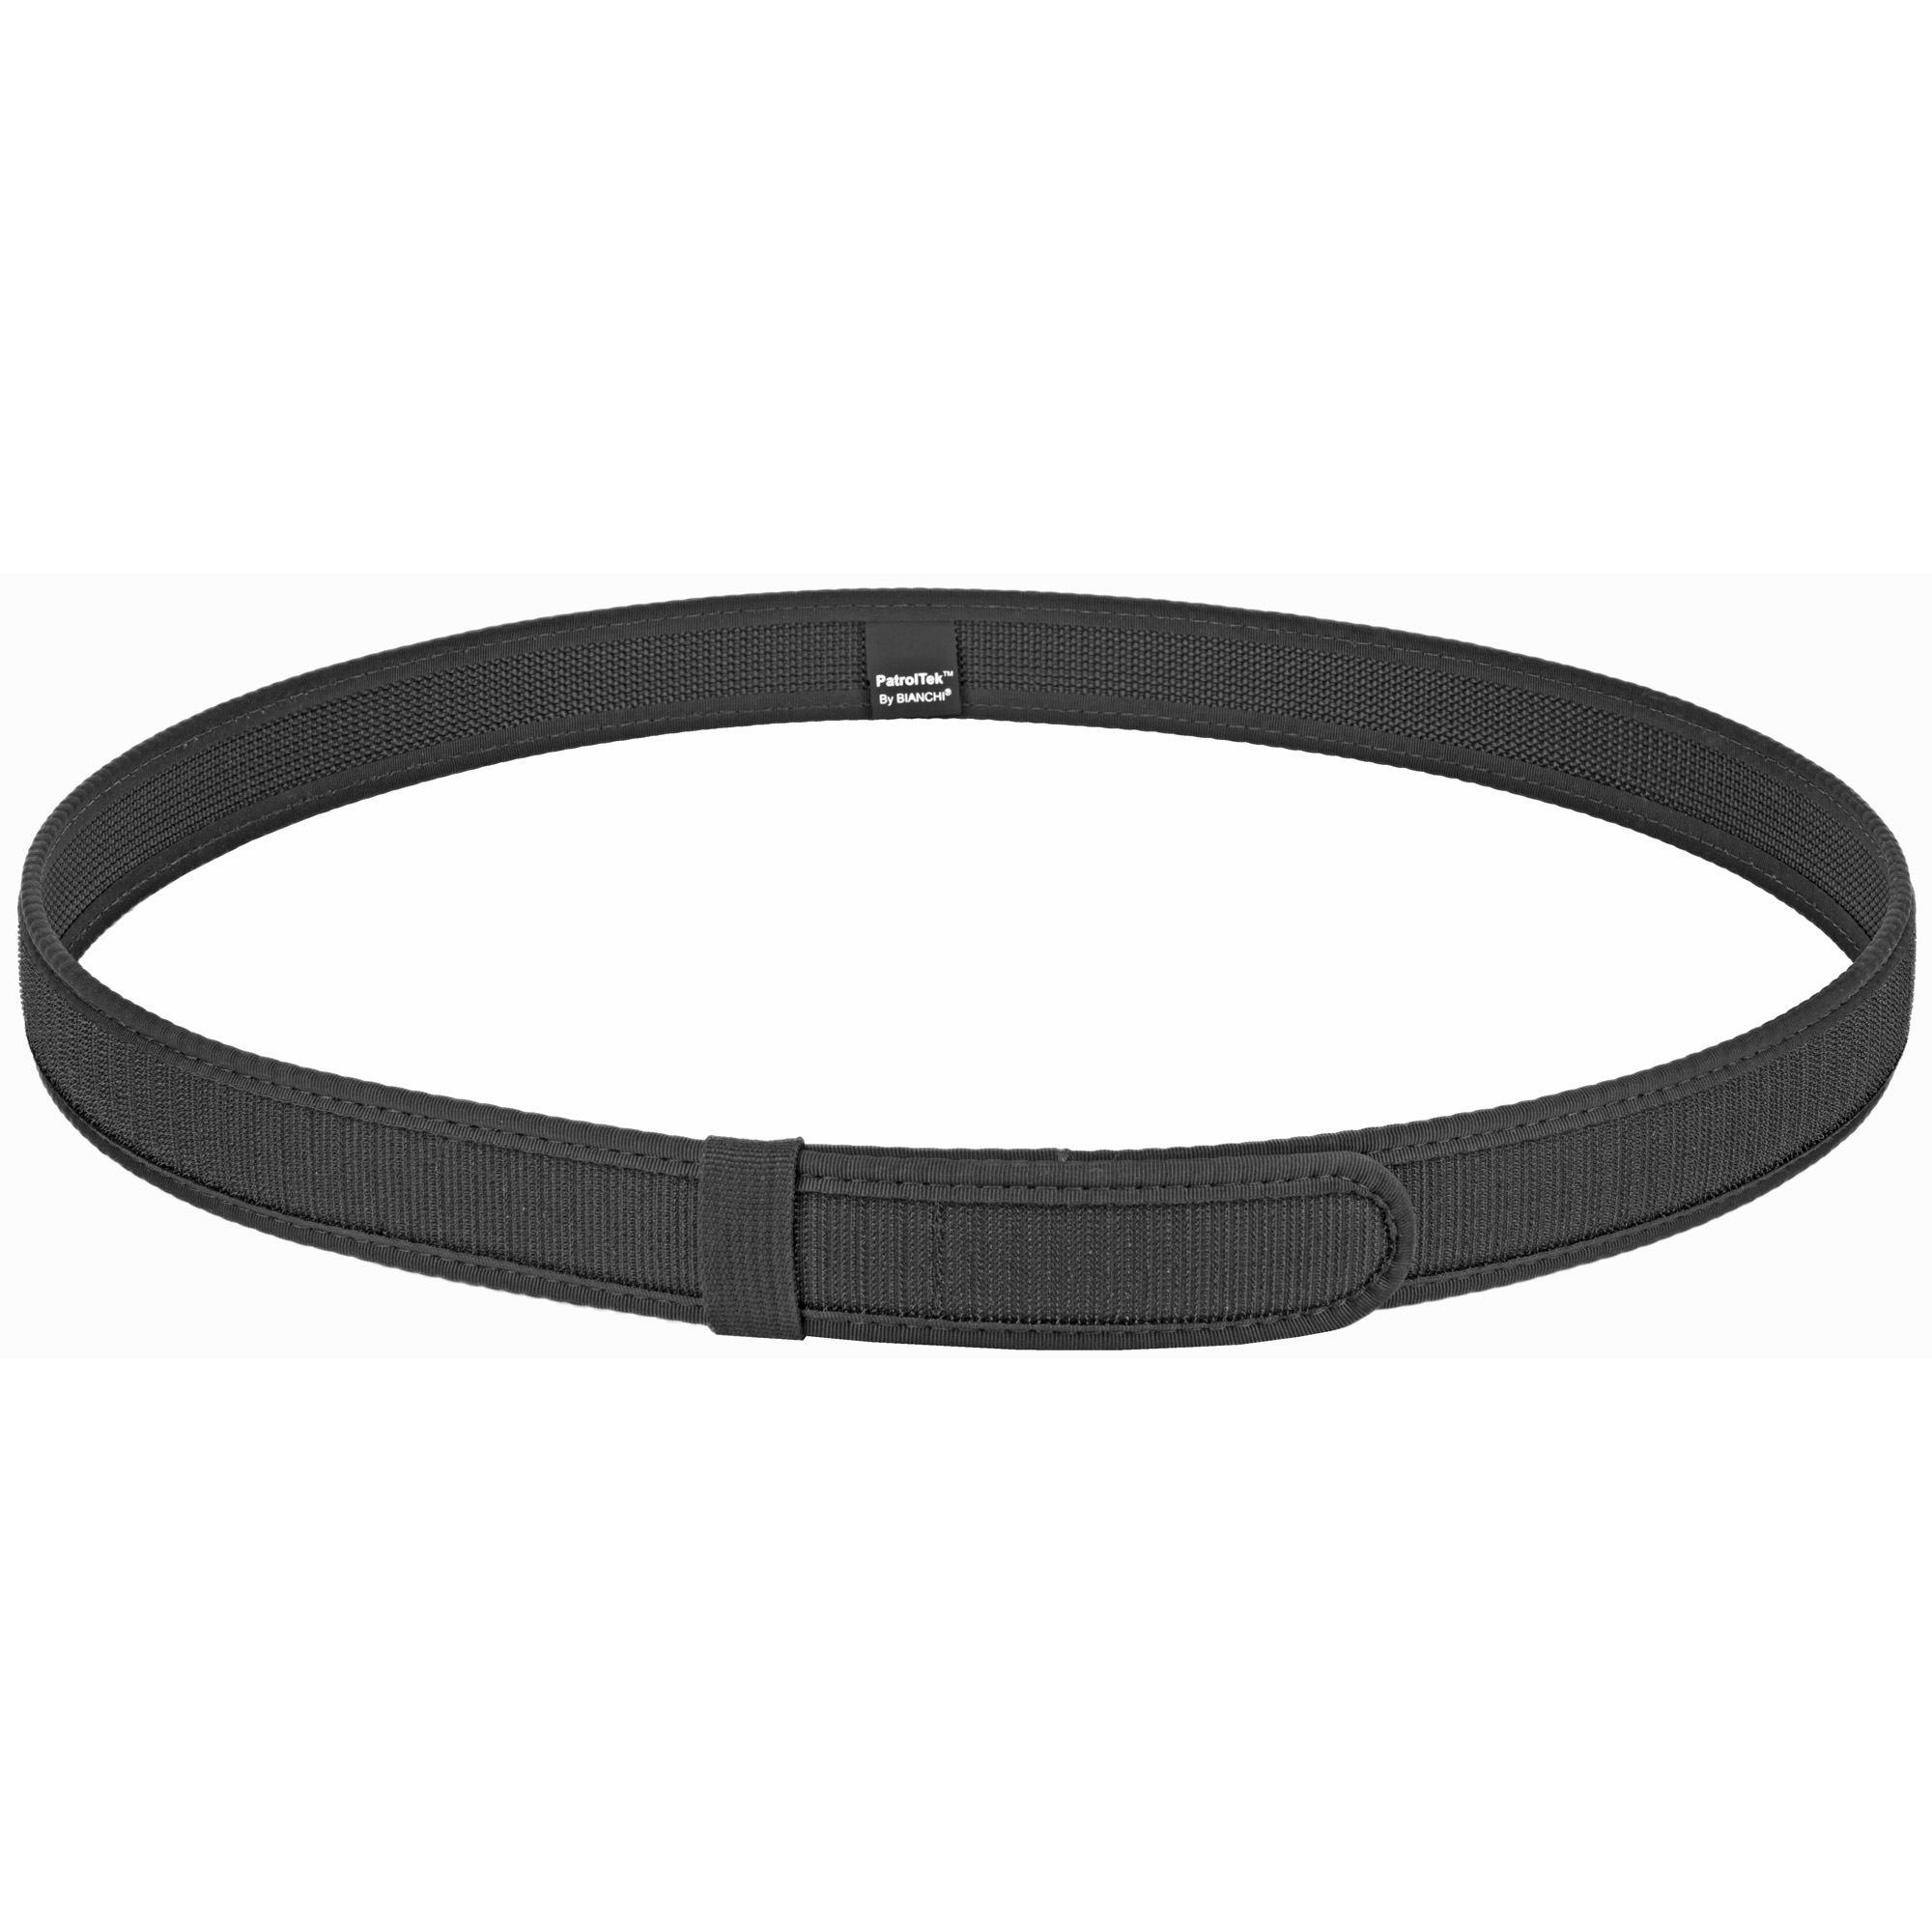 This PatrolTek(TM) Liner Belt has a hook exterior for use with duty belts. It features durable web construction and edge binding for long lasting wear and good looks. It has a hook and loop closure for quick on/of ease.